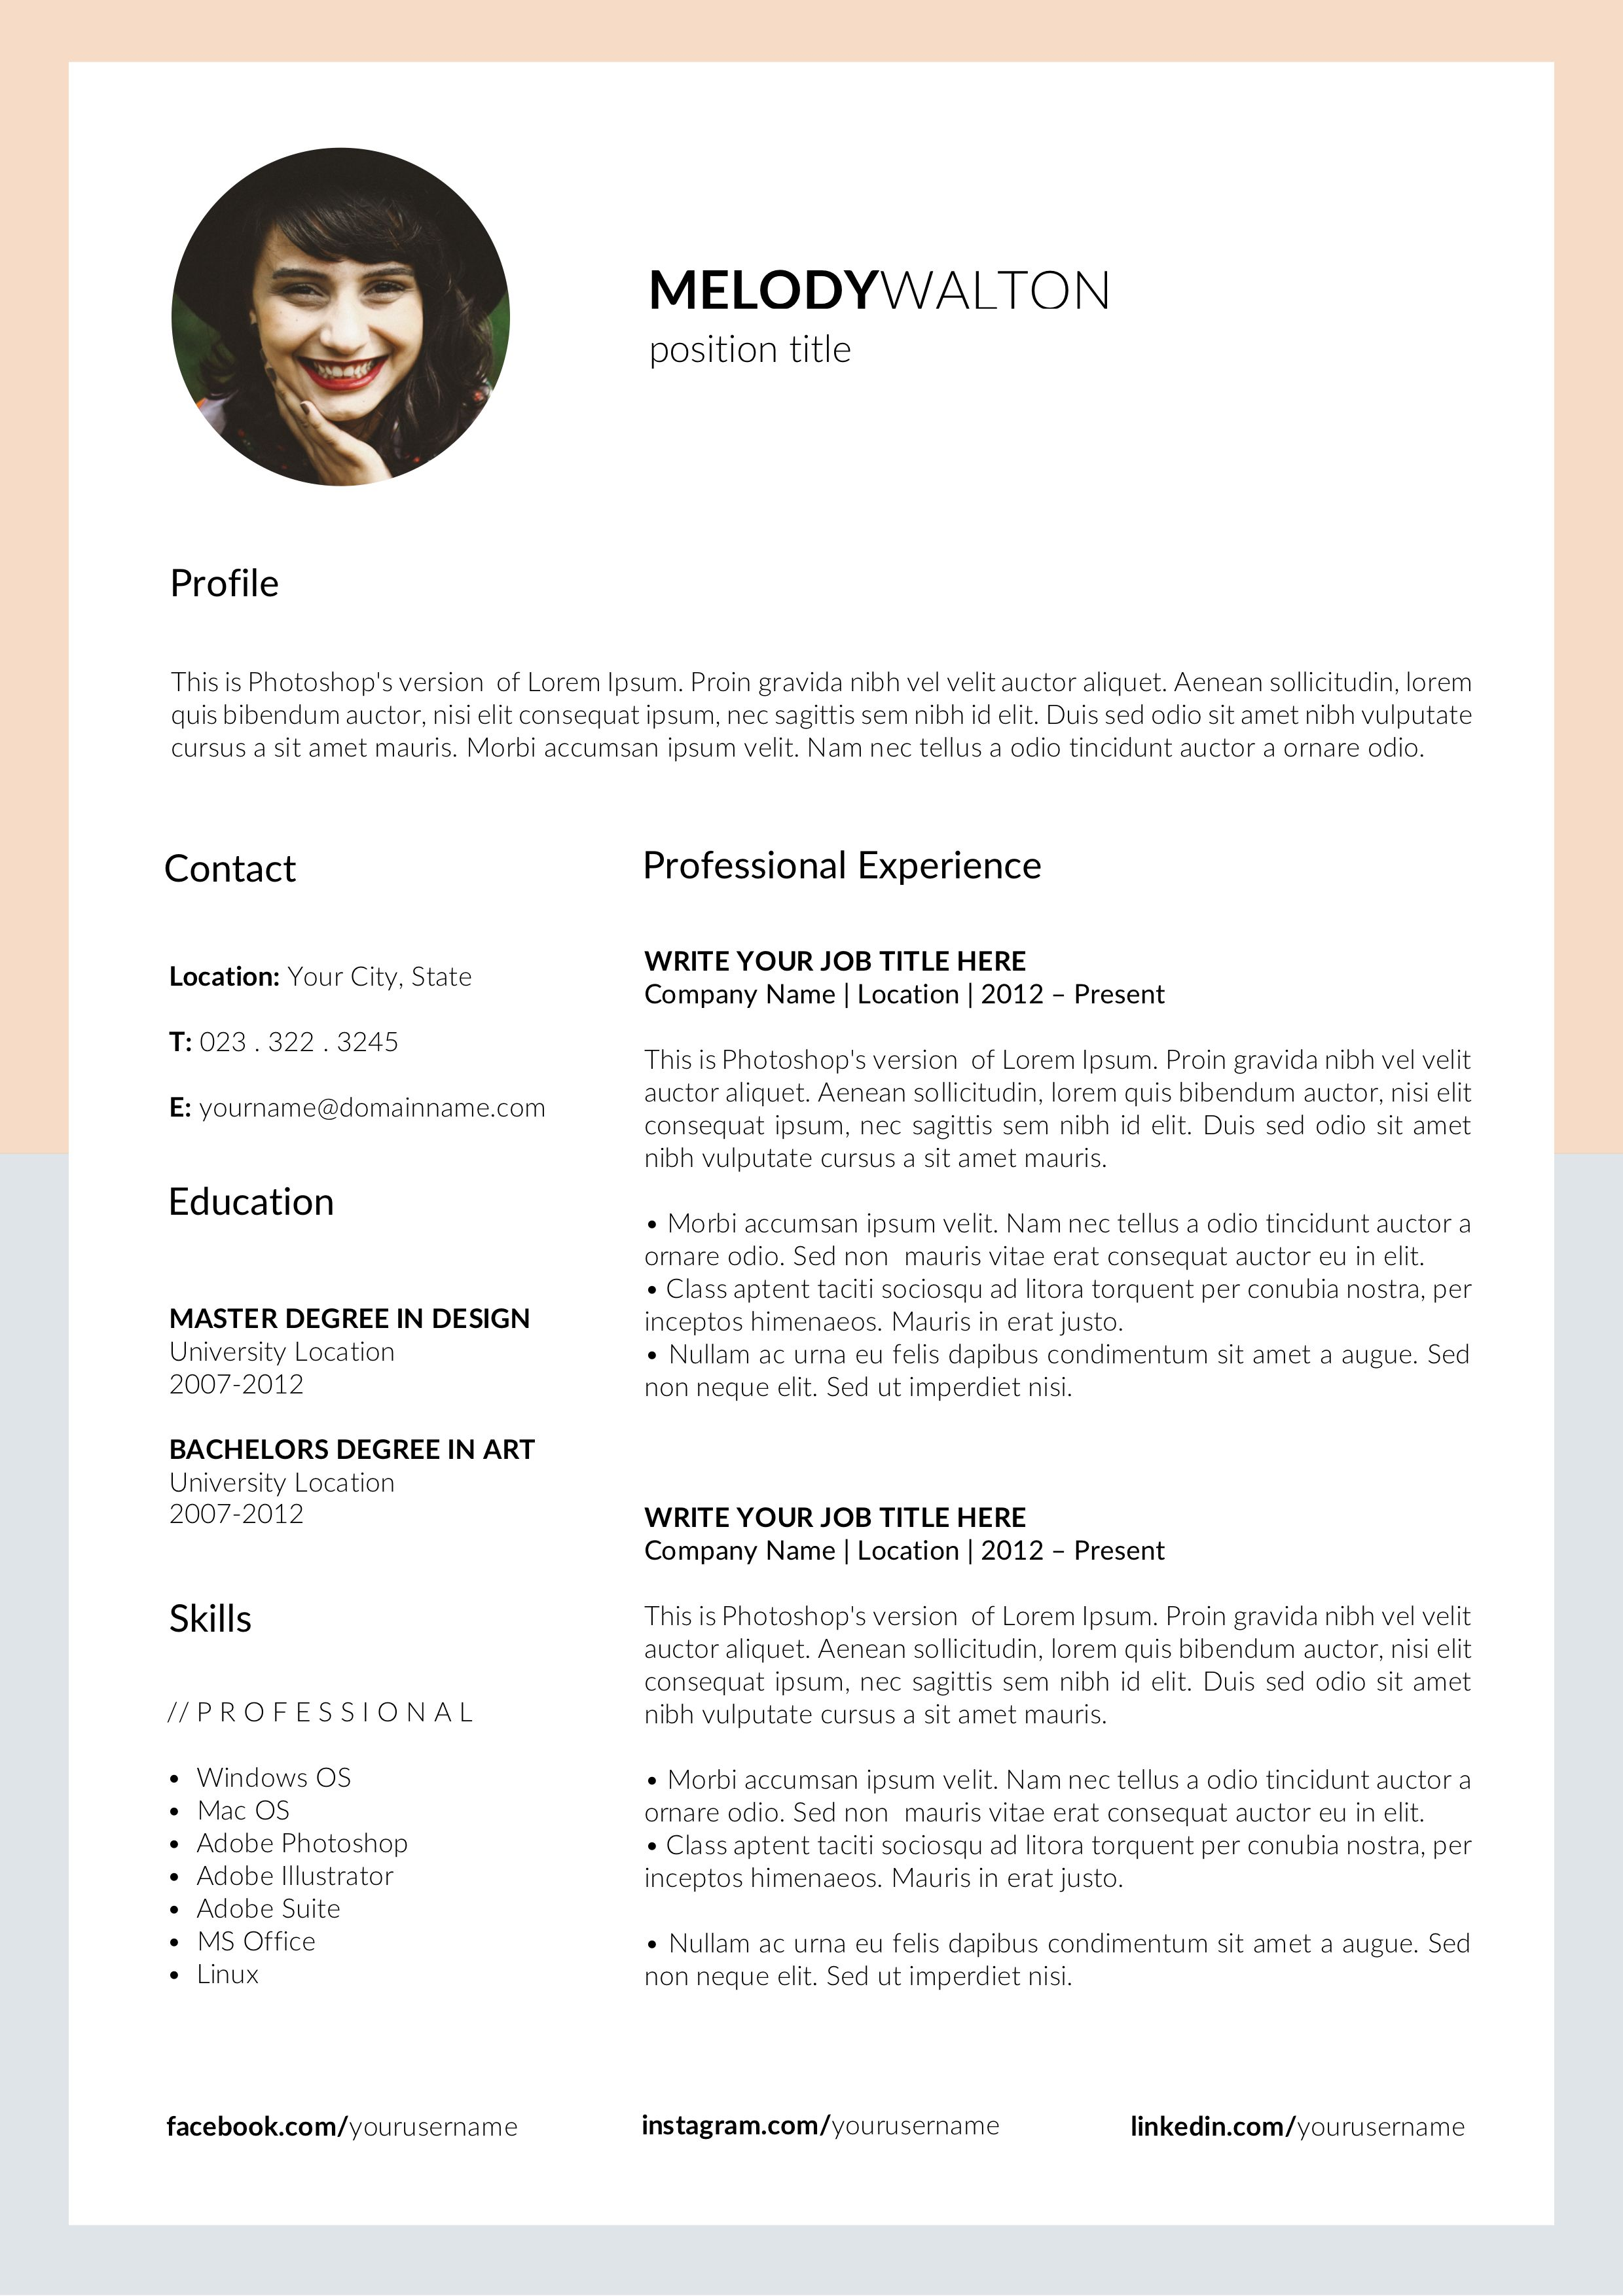 CV with Photo. CV Template. Resume with Photo. CV Design. Resume ...